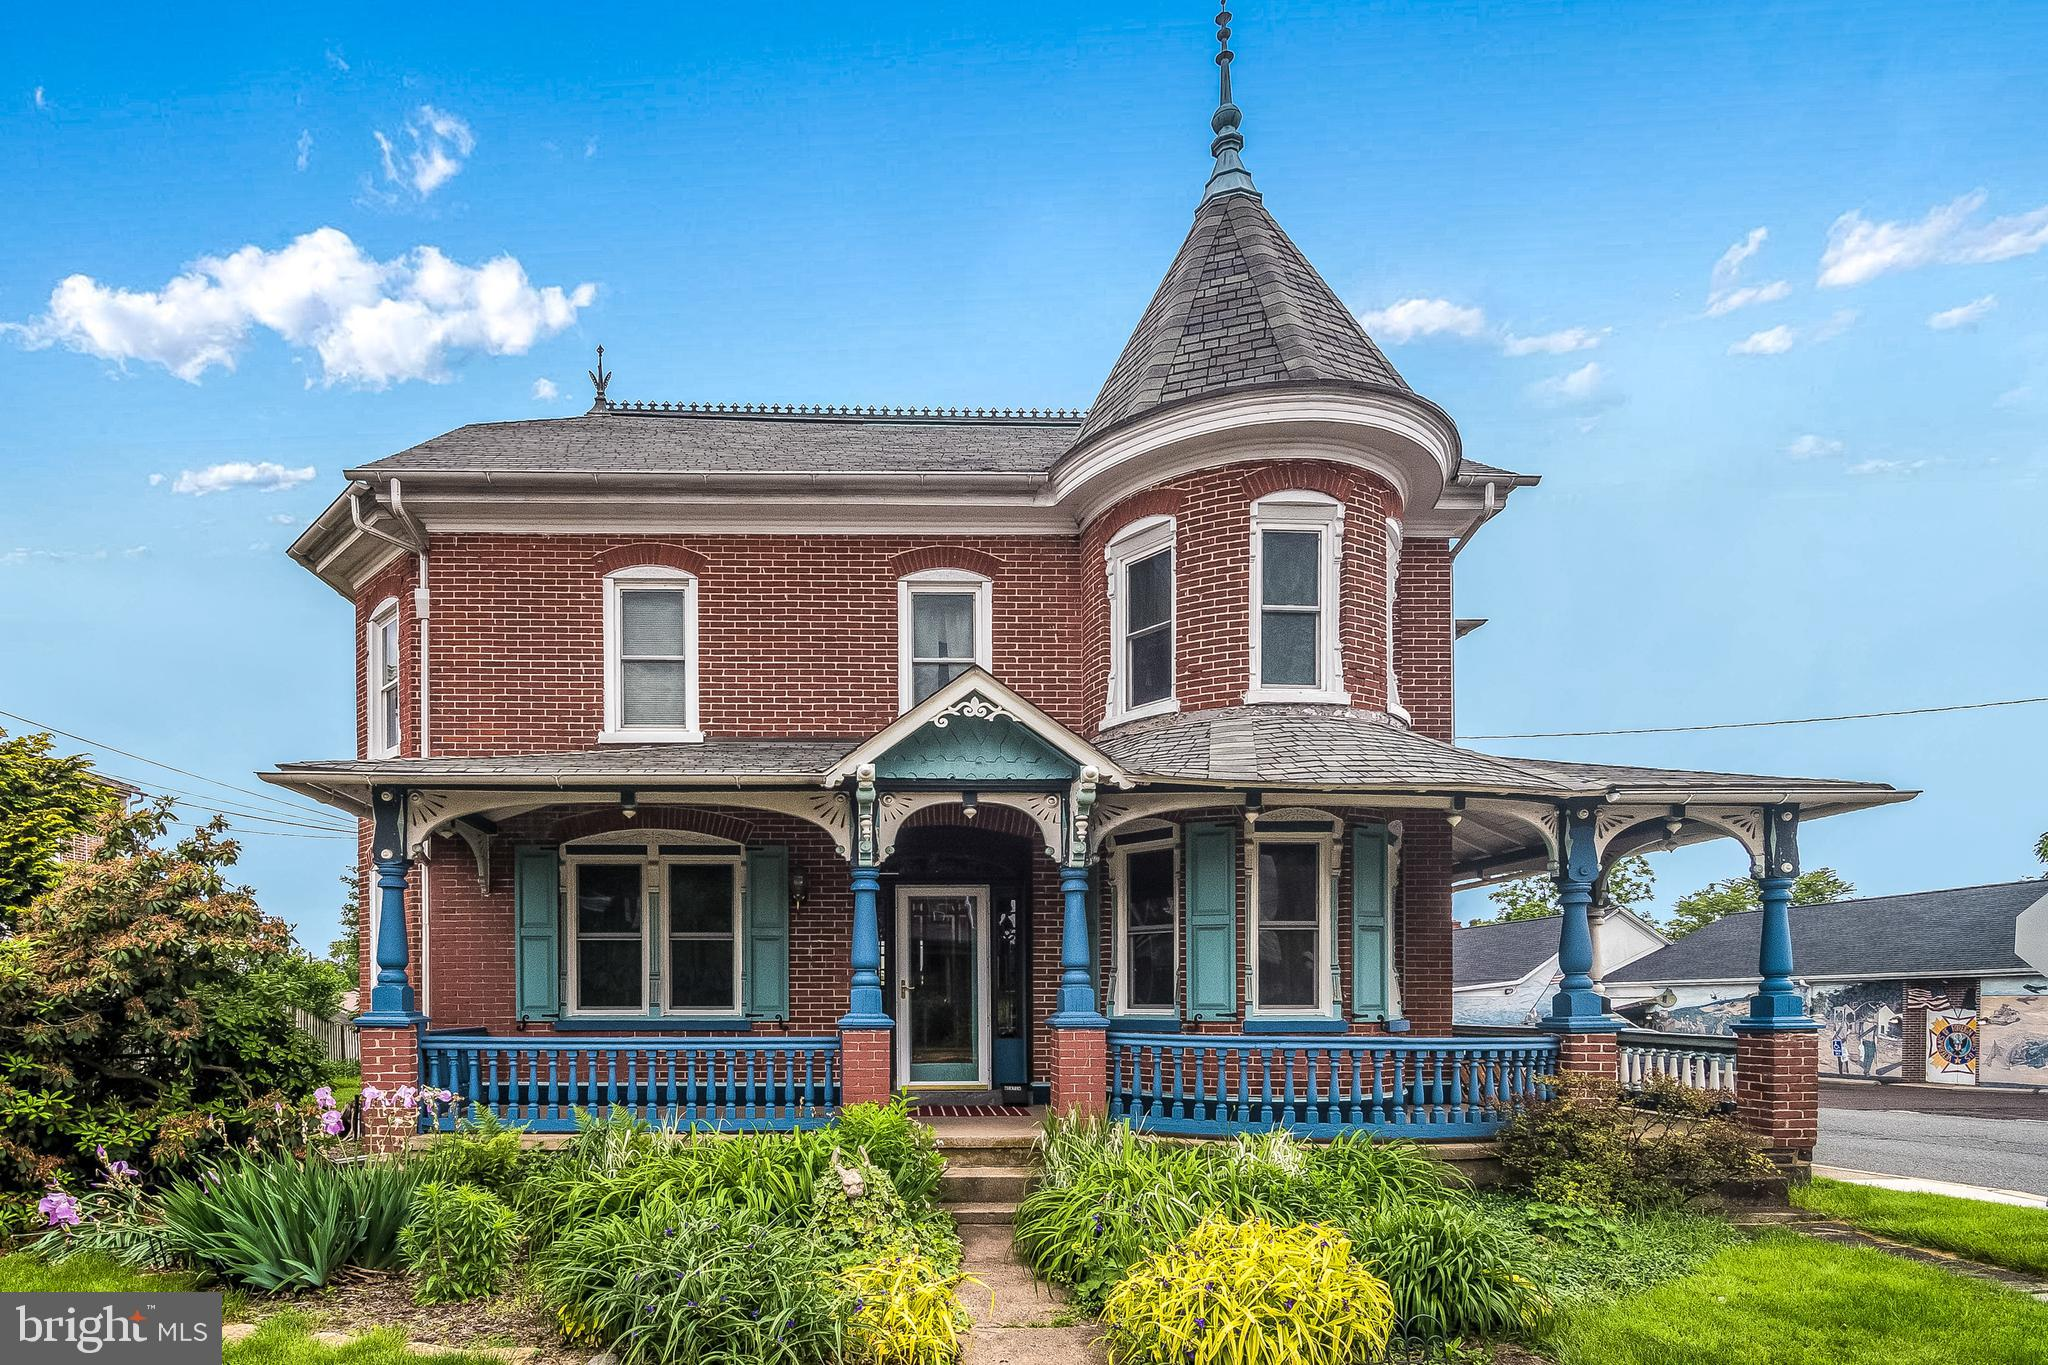 373 MAIN STREET, RED HILL, PA 18076